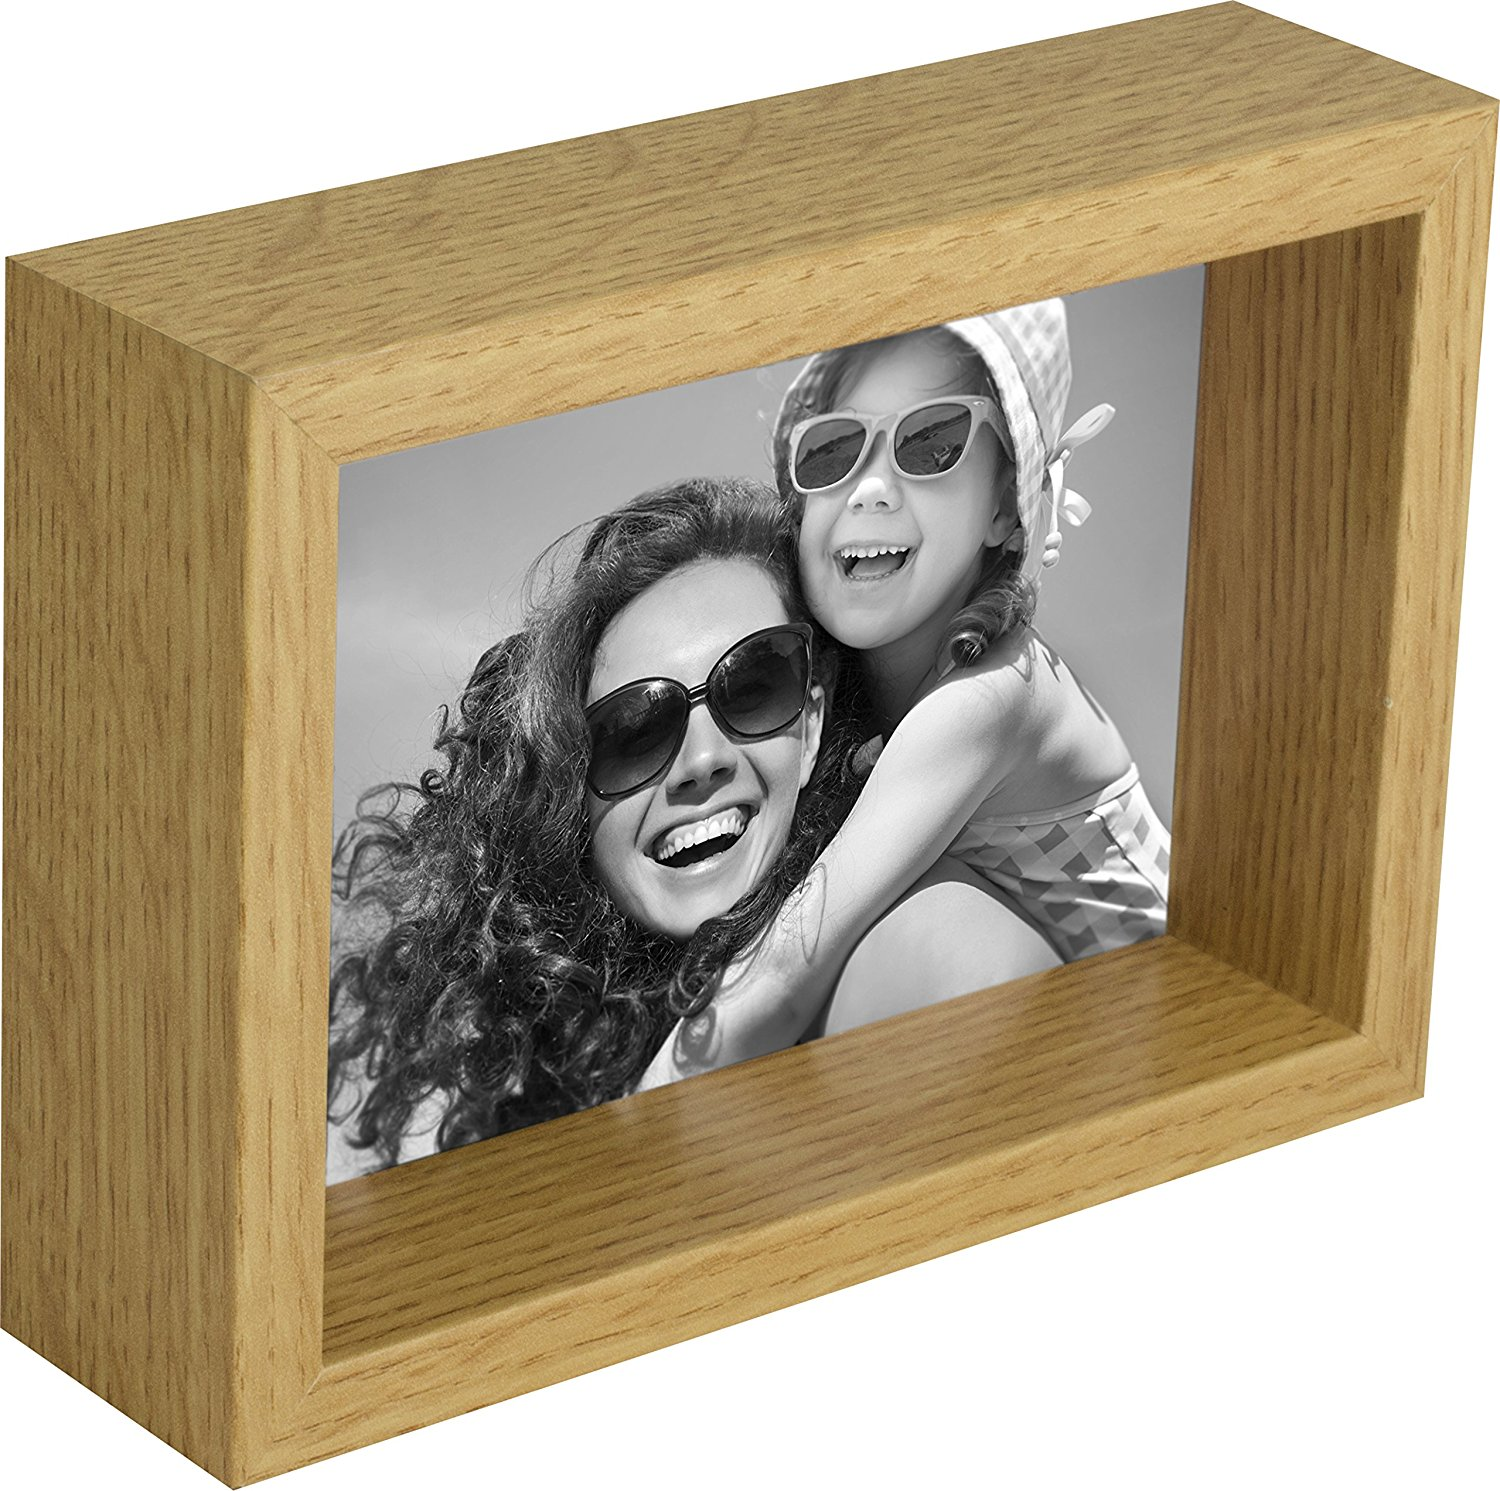 5 x 7-Inch Box Picture Photo Frame, Oak